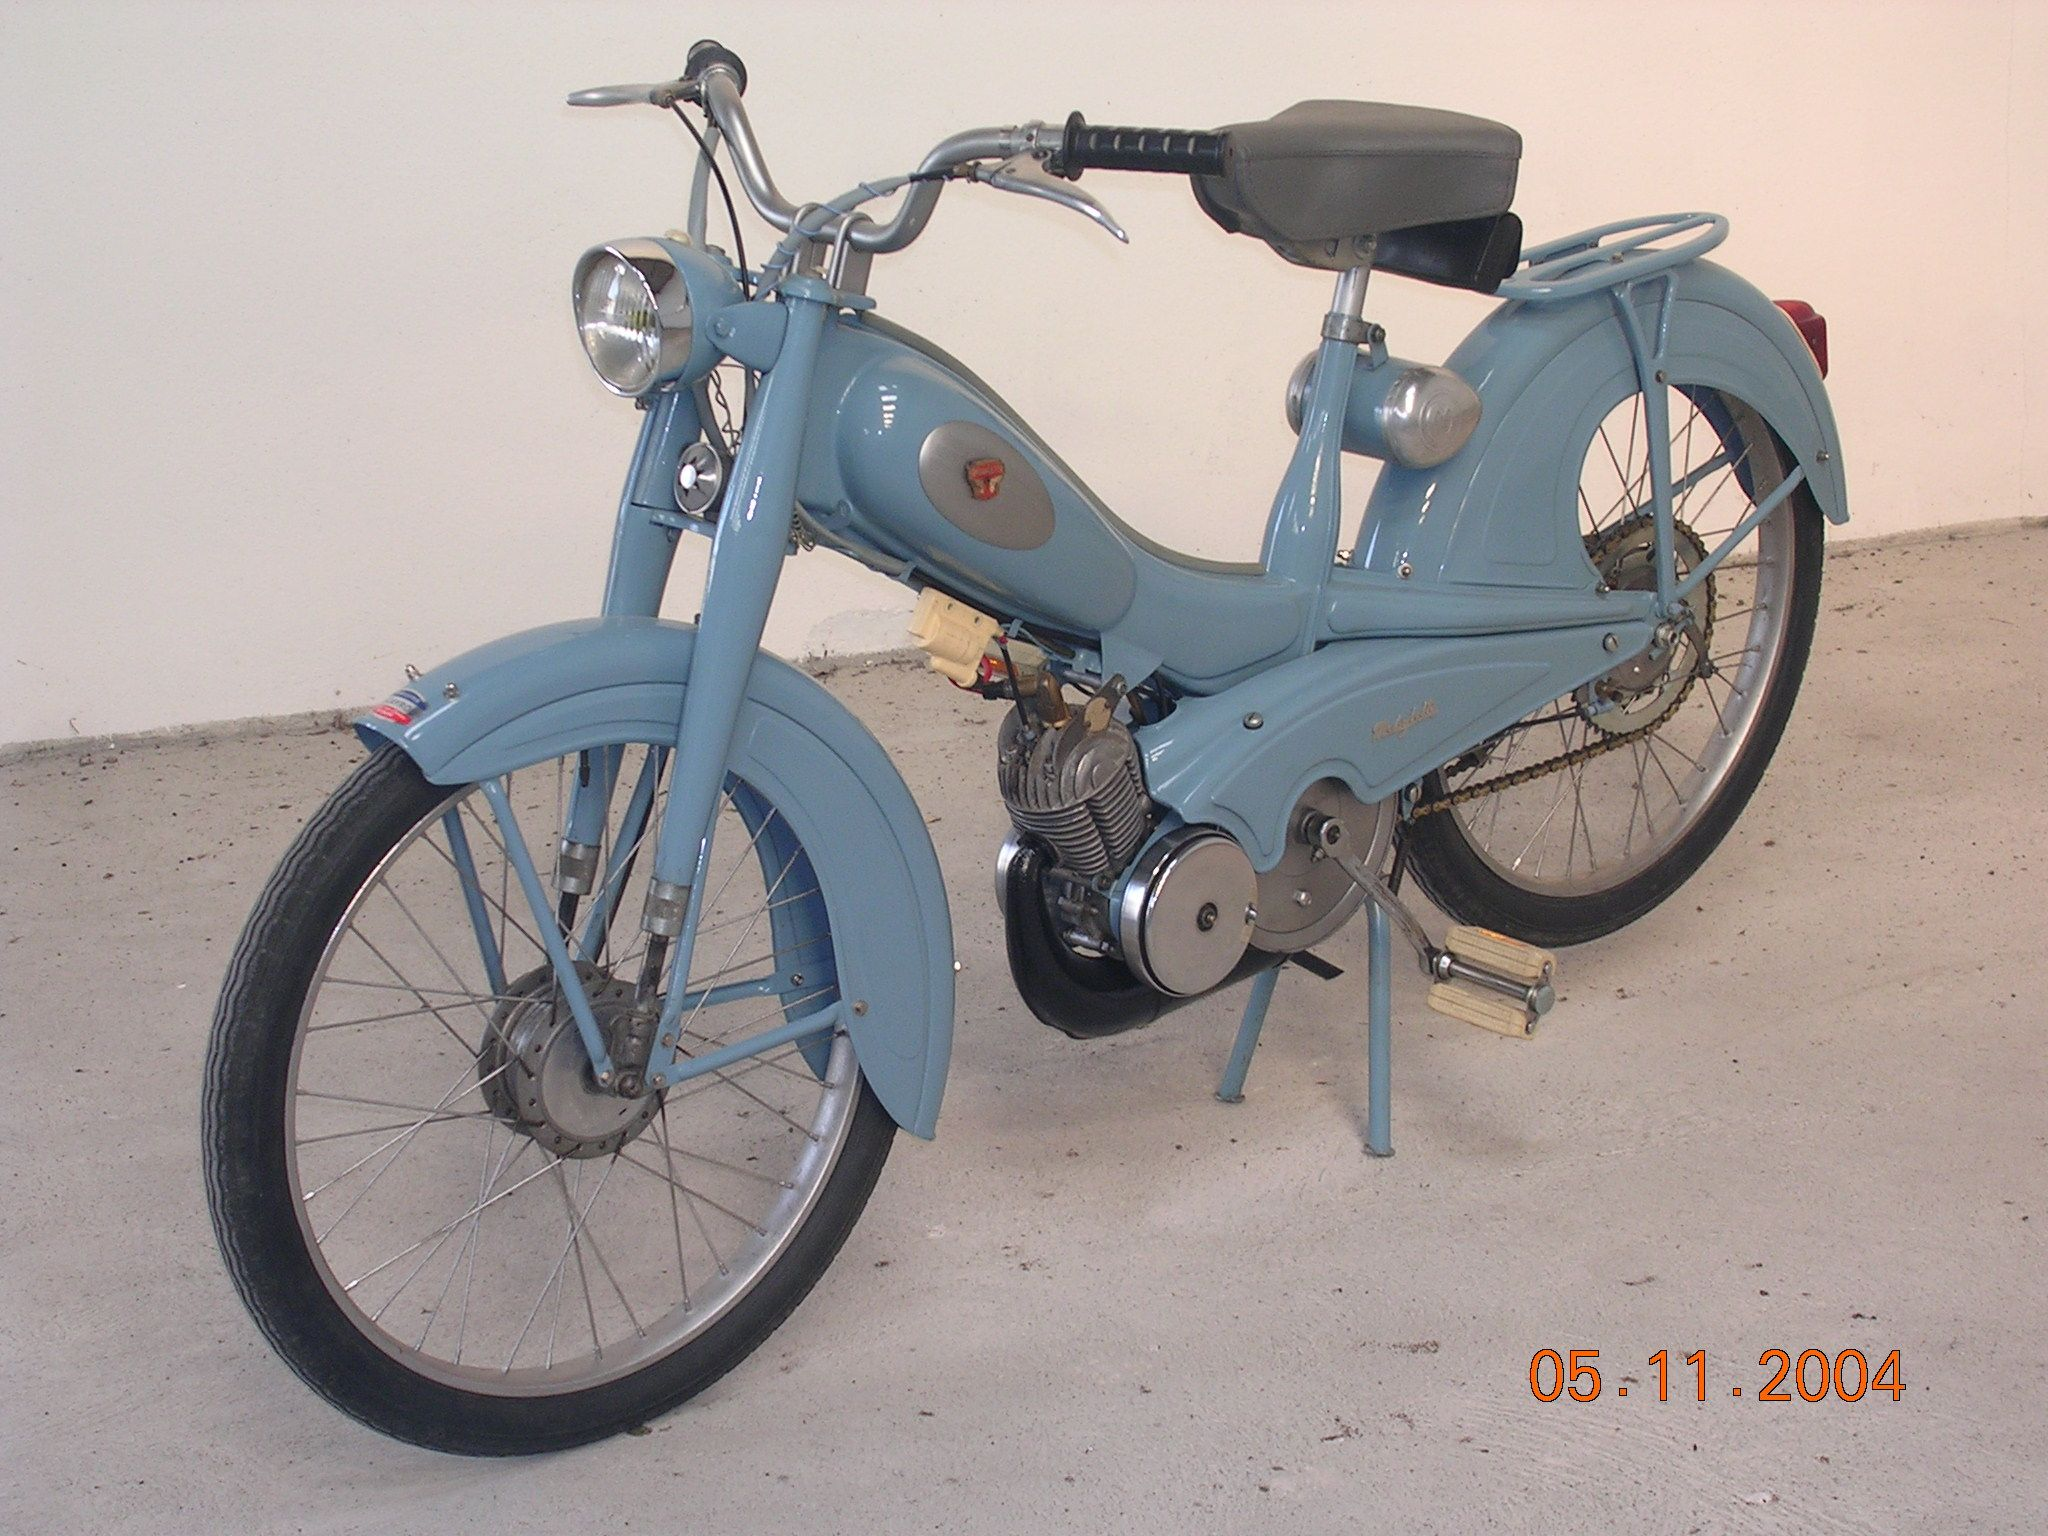 Cyclomoteur Mobylette Av 76 Pantin France Europe Mobylete Kawasaki Wiring Diagrams For 1969 1972 H1 Triples